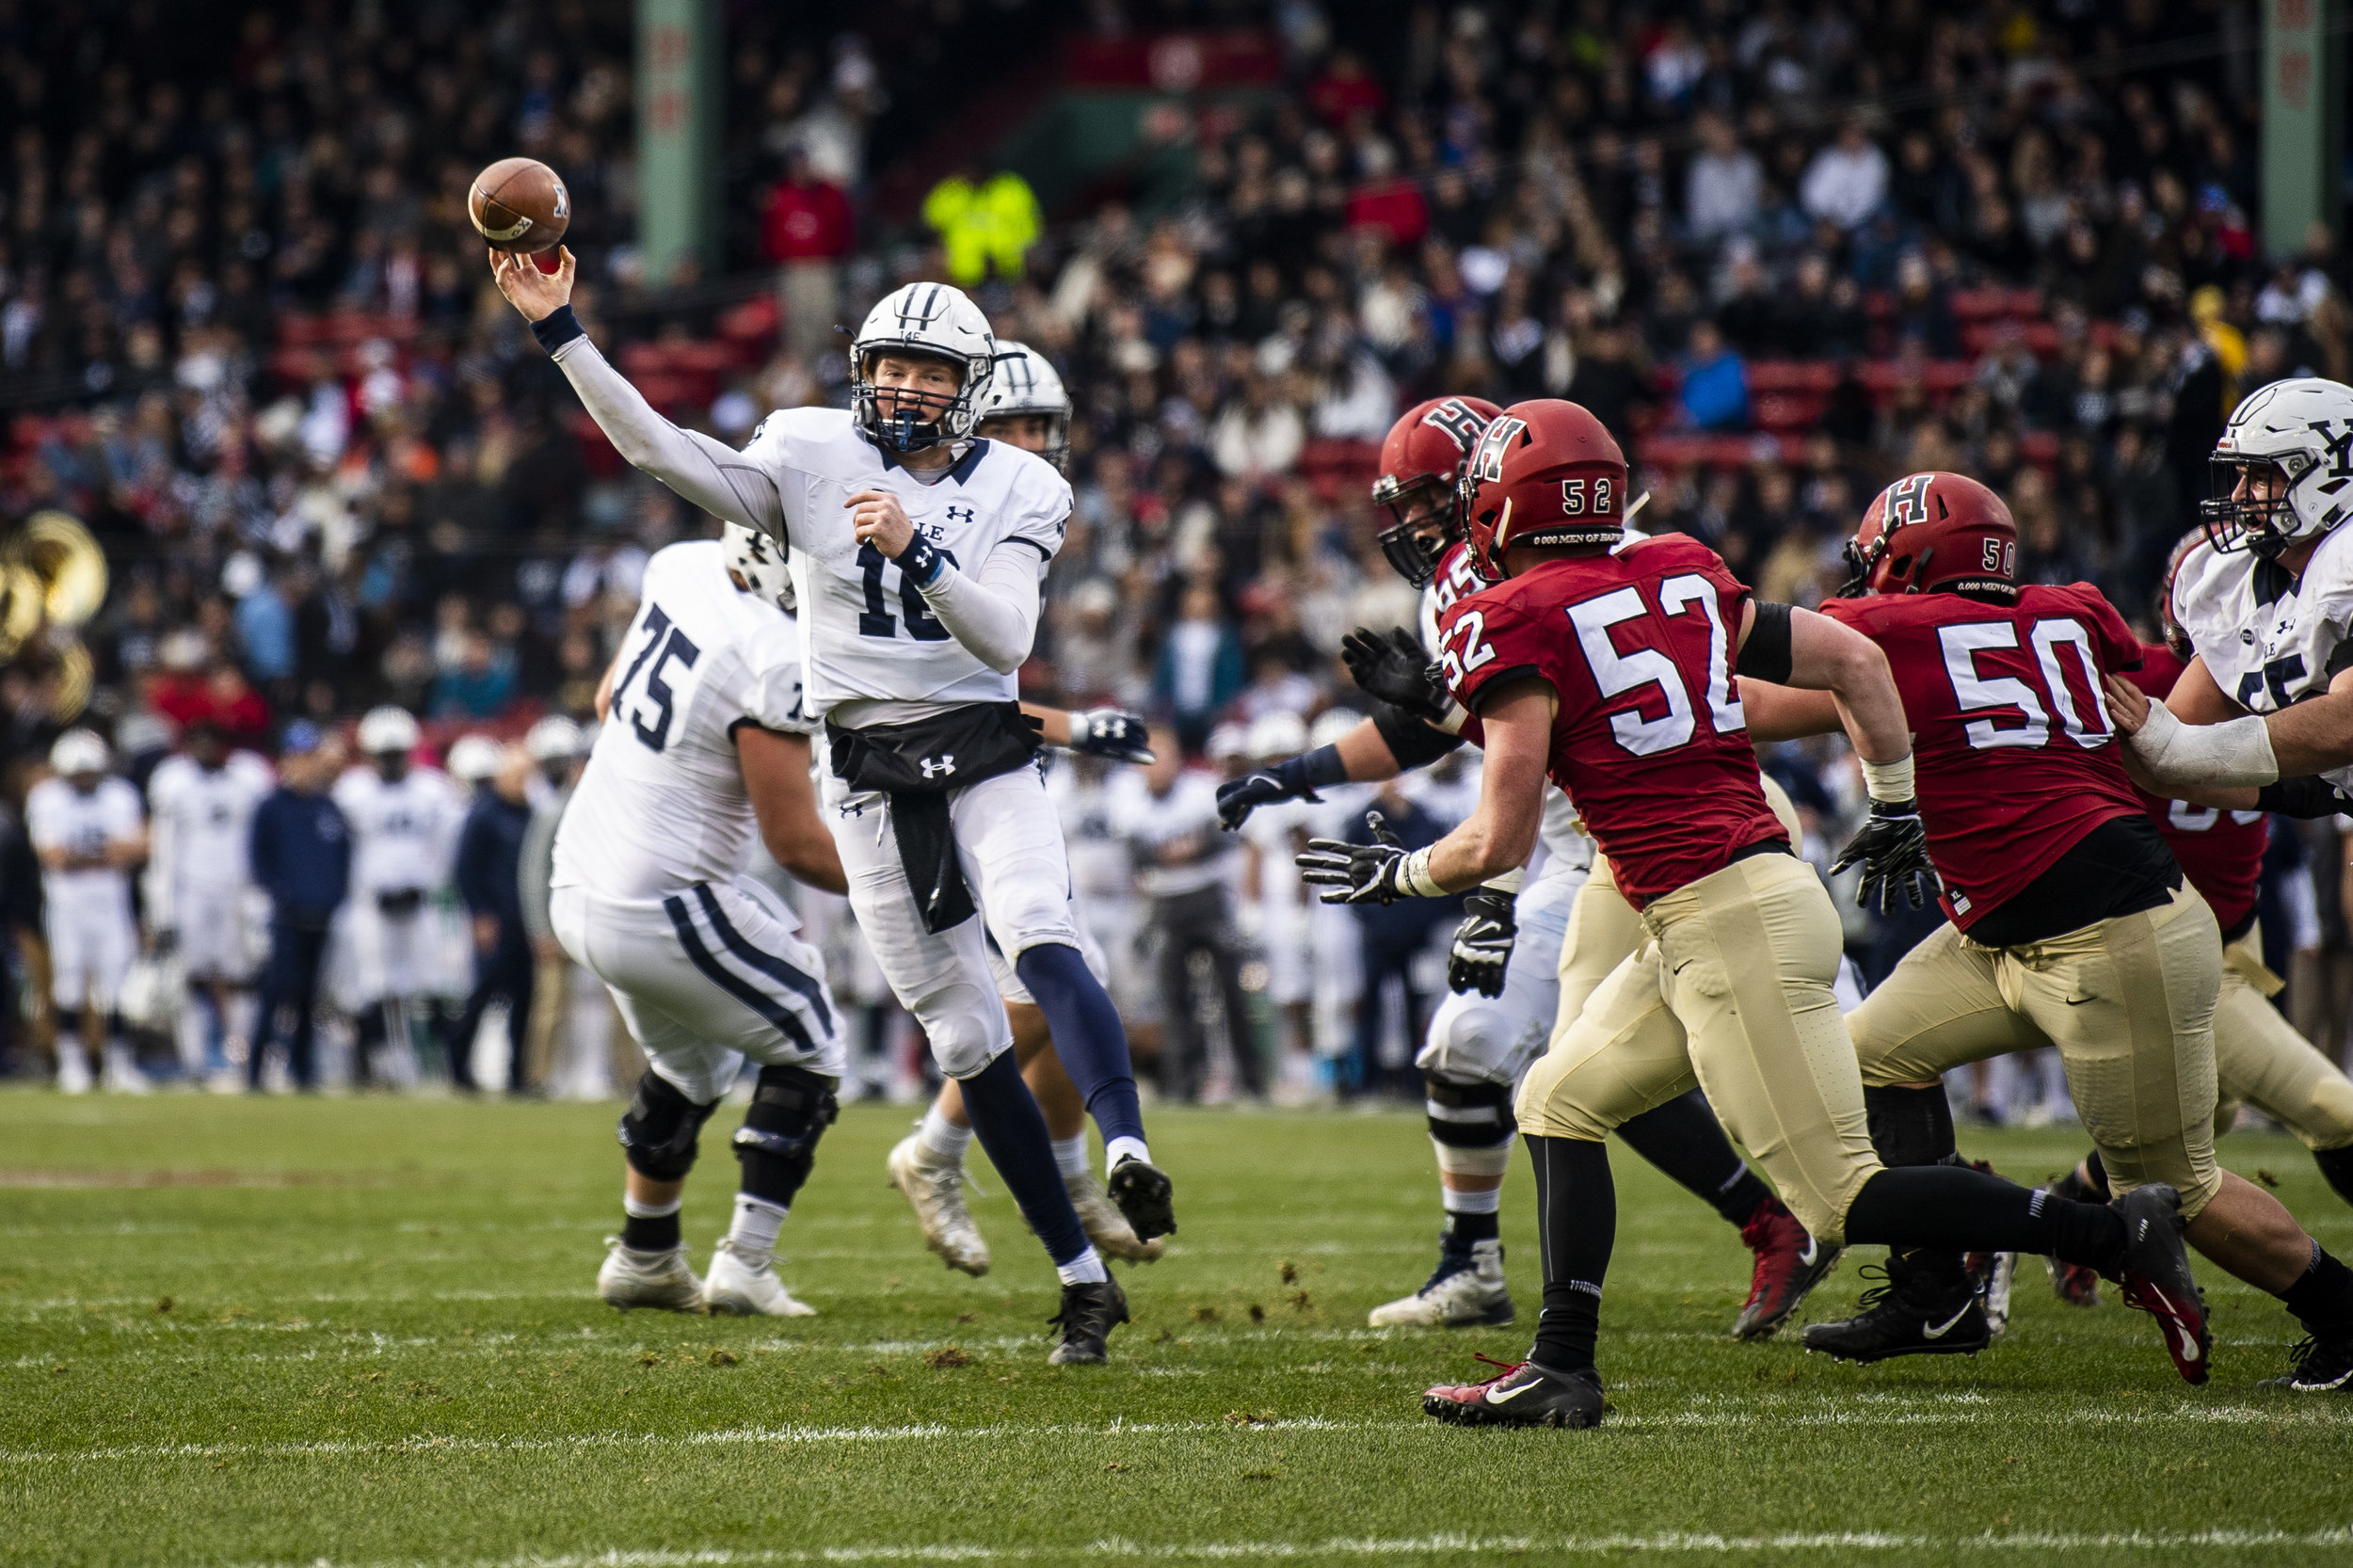 November 16, 2018, Boston, MA: A Yale football player throws the ball during the Harvard University and Yale University football Game at Fenway Park in Boston, Massachusetts on Thursday, November 16, 2018. (Photo by Matthew Thomas/Boston Red Sox)